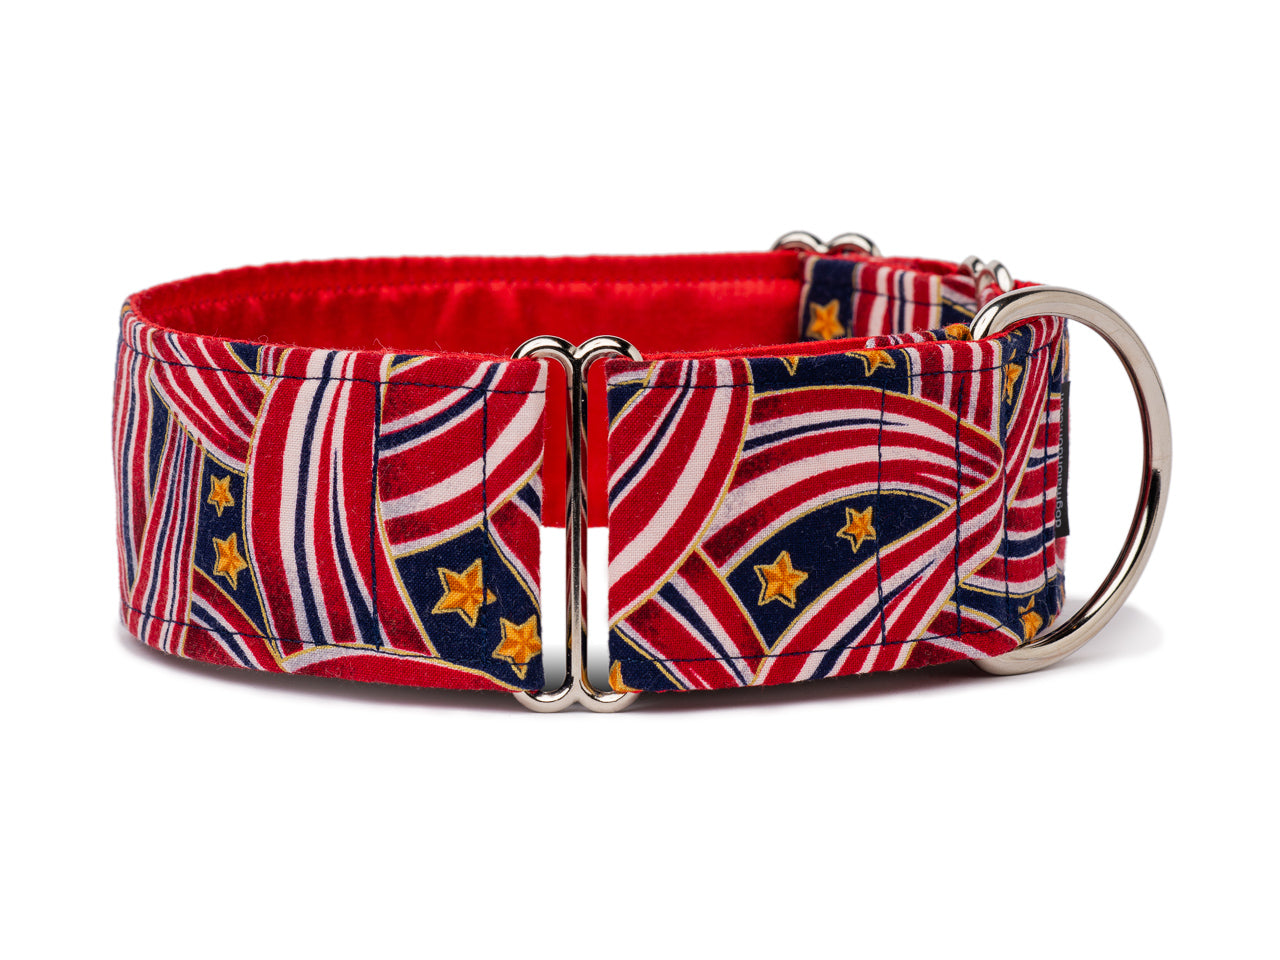 Perfect for any patriotic pooch, this red, white, and blue collar is a stylish way for your pup to show American spirit!